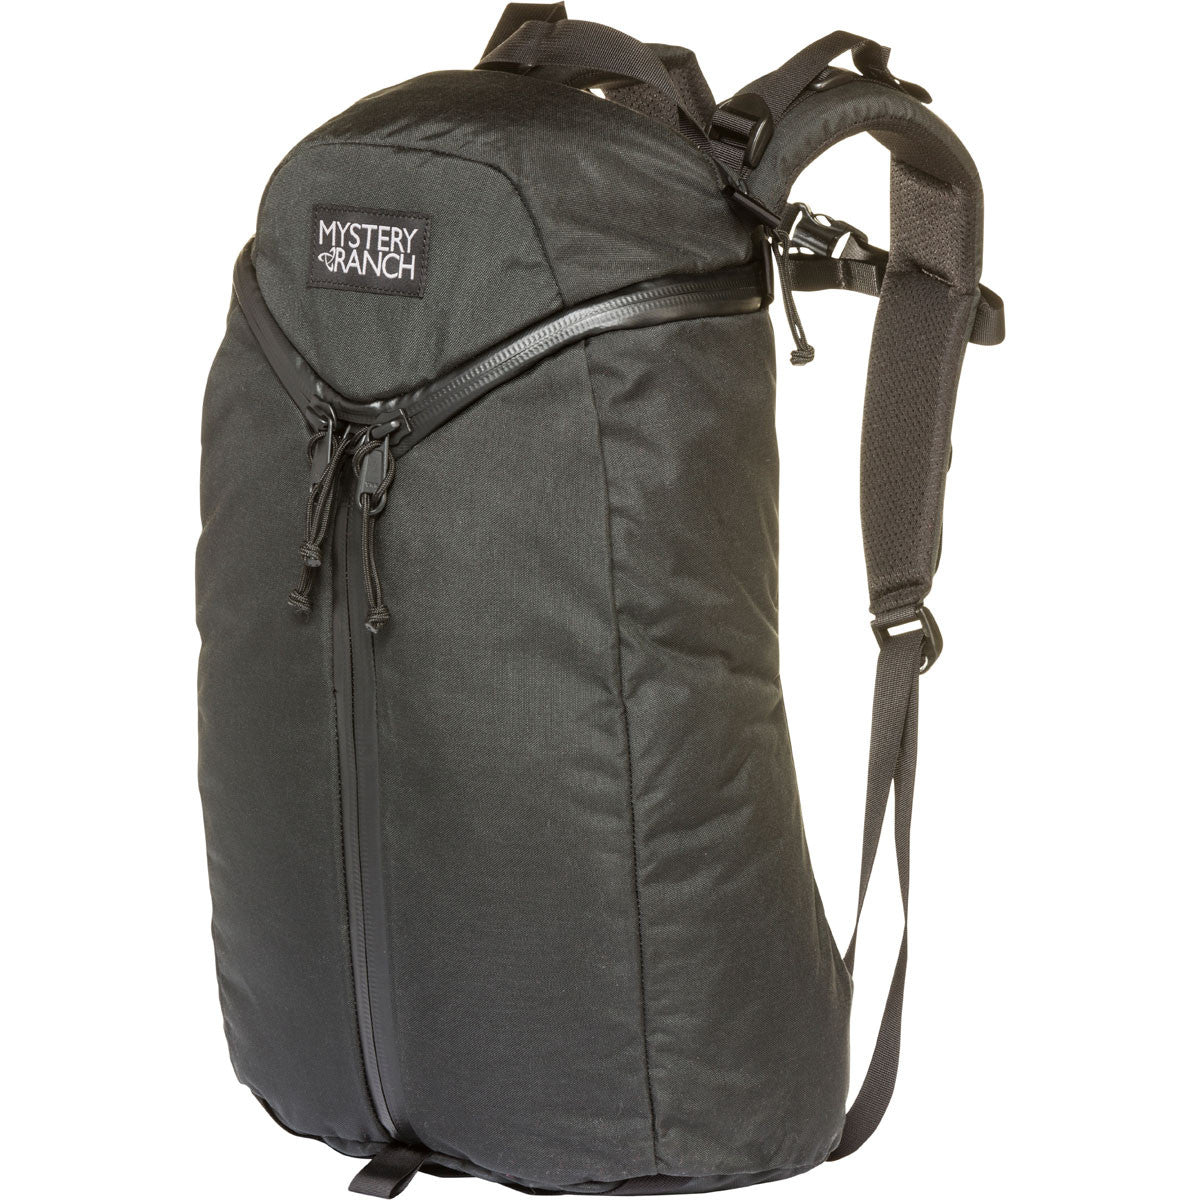 Mystery Ranch Urban Assault Back Pack at Urban Industry